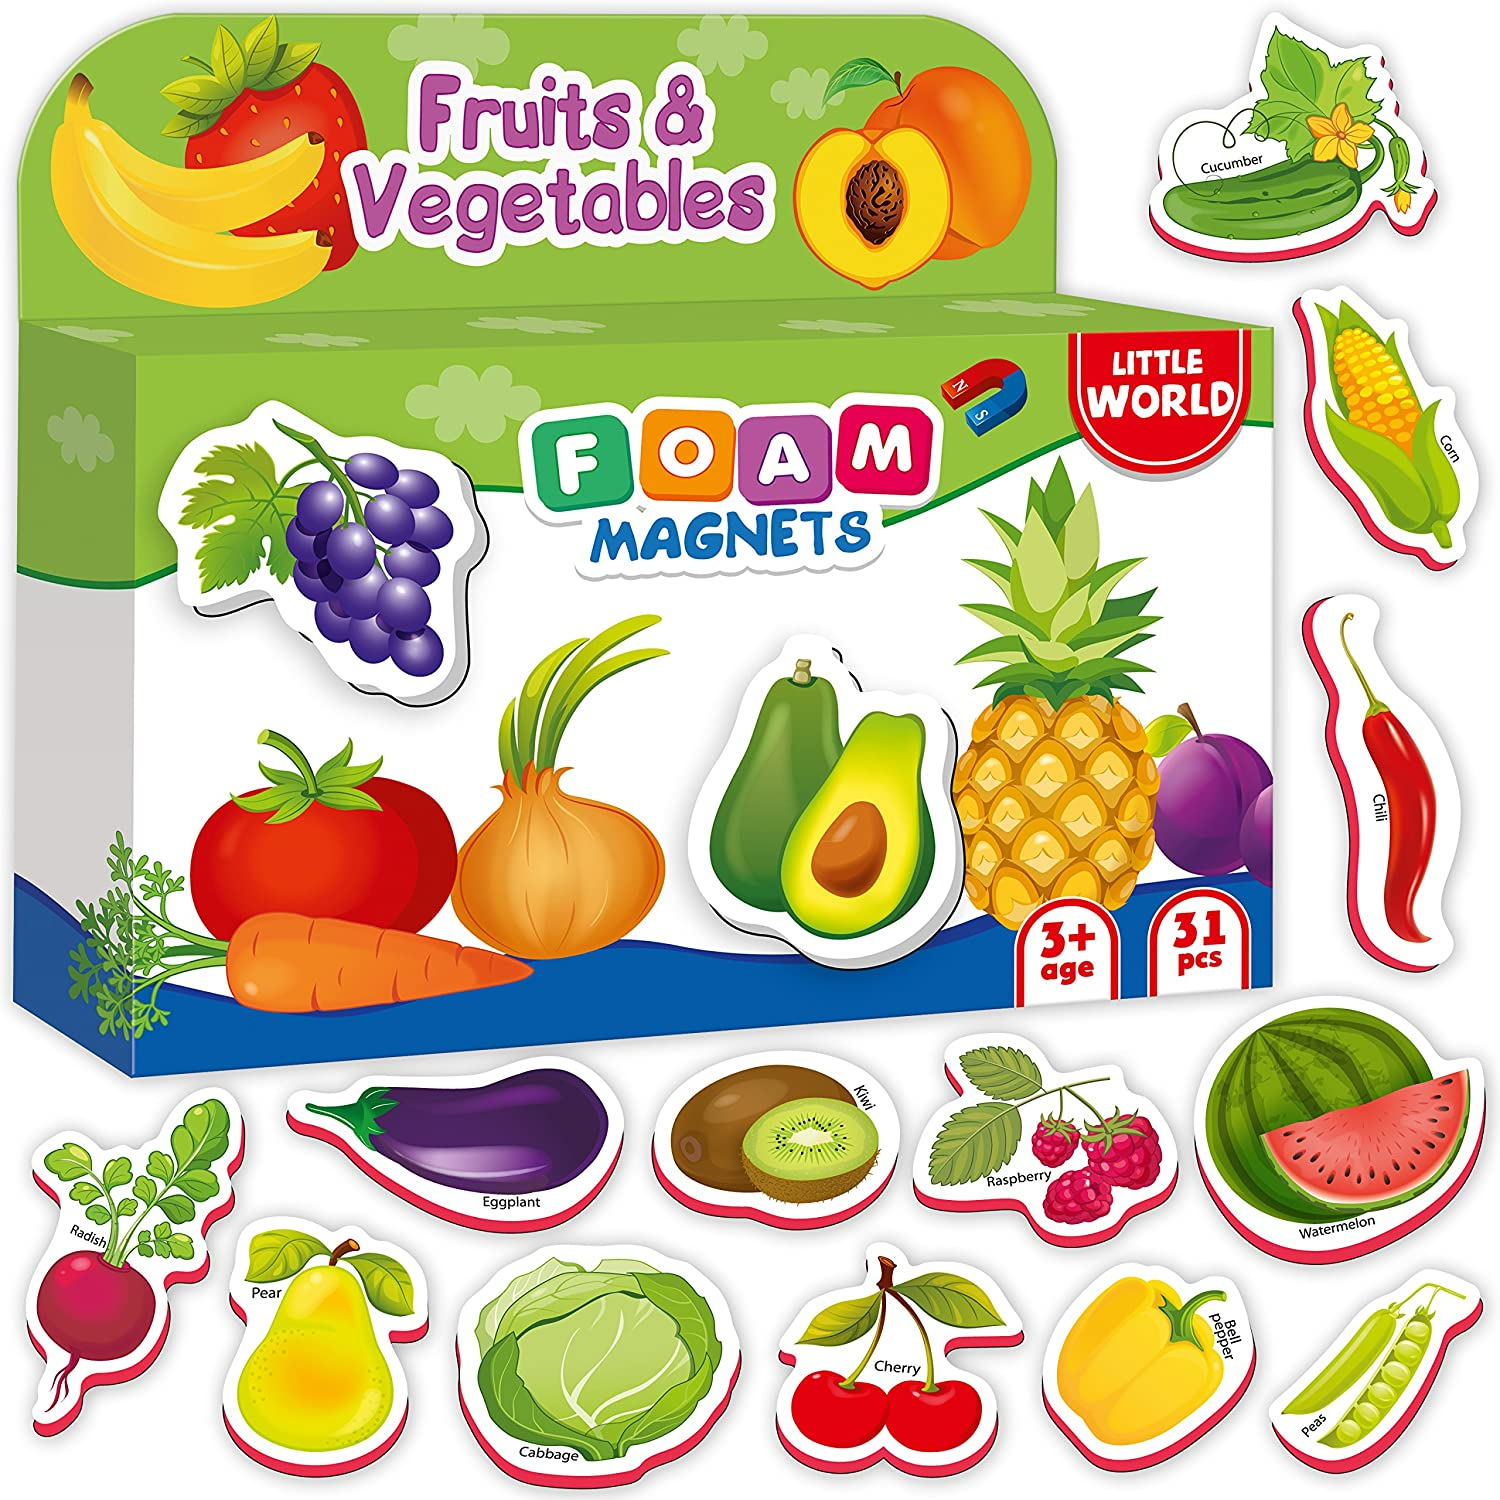 Refrigerator Magnets for kids FRUITS & VEGGIES (31 pcs) - Fridge Magnets for Toddlers activity - Kid magnets - Toddler magnets - Baby Magnets - Food Magnets - Magnetic Shapes - Foam Magnets